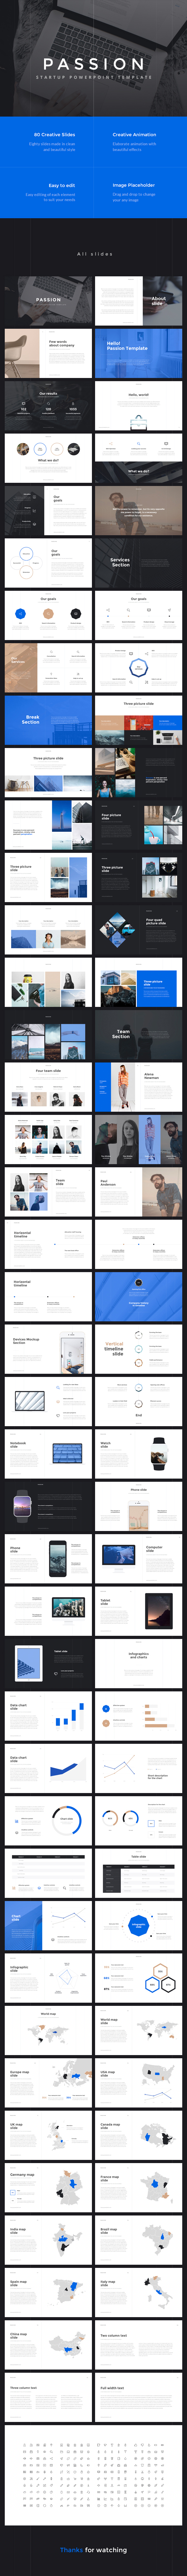 Passion Startup PowerPoint Template - PowerPoint Templates Presentation Templates